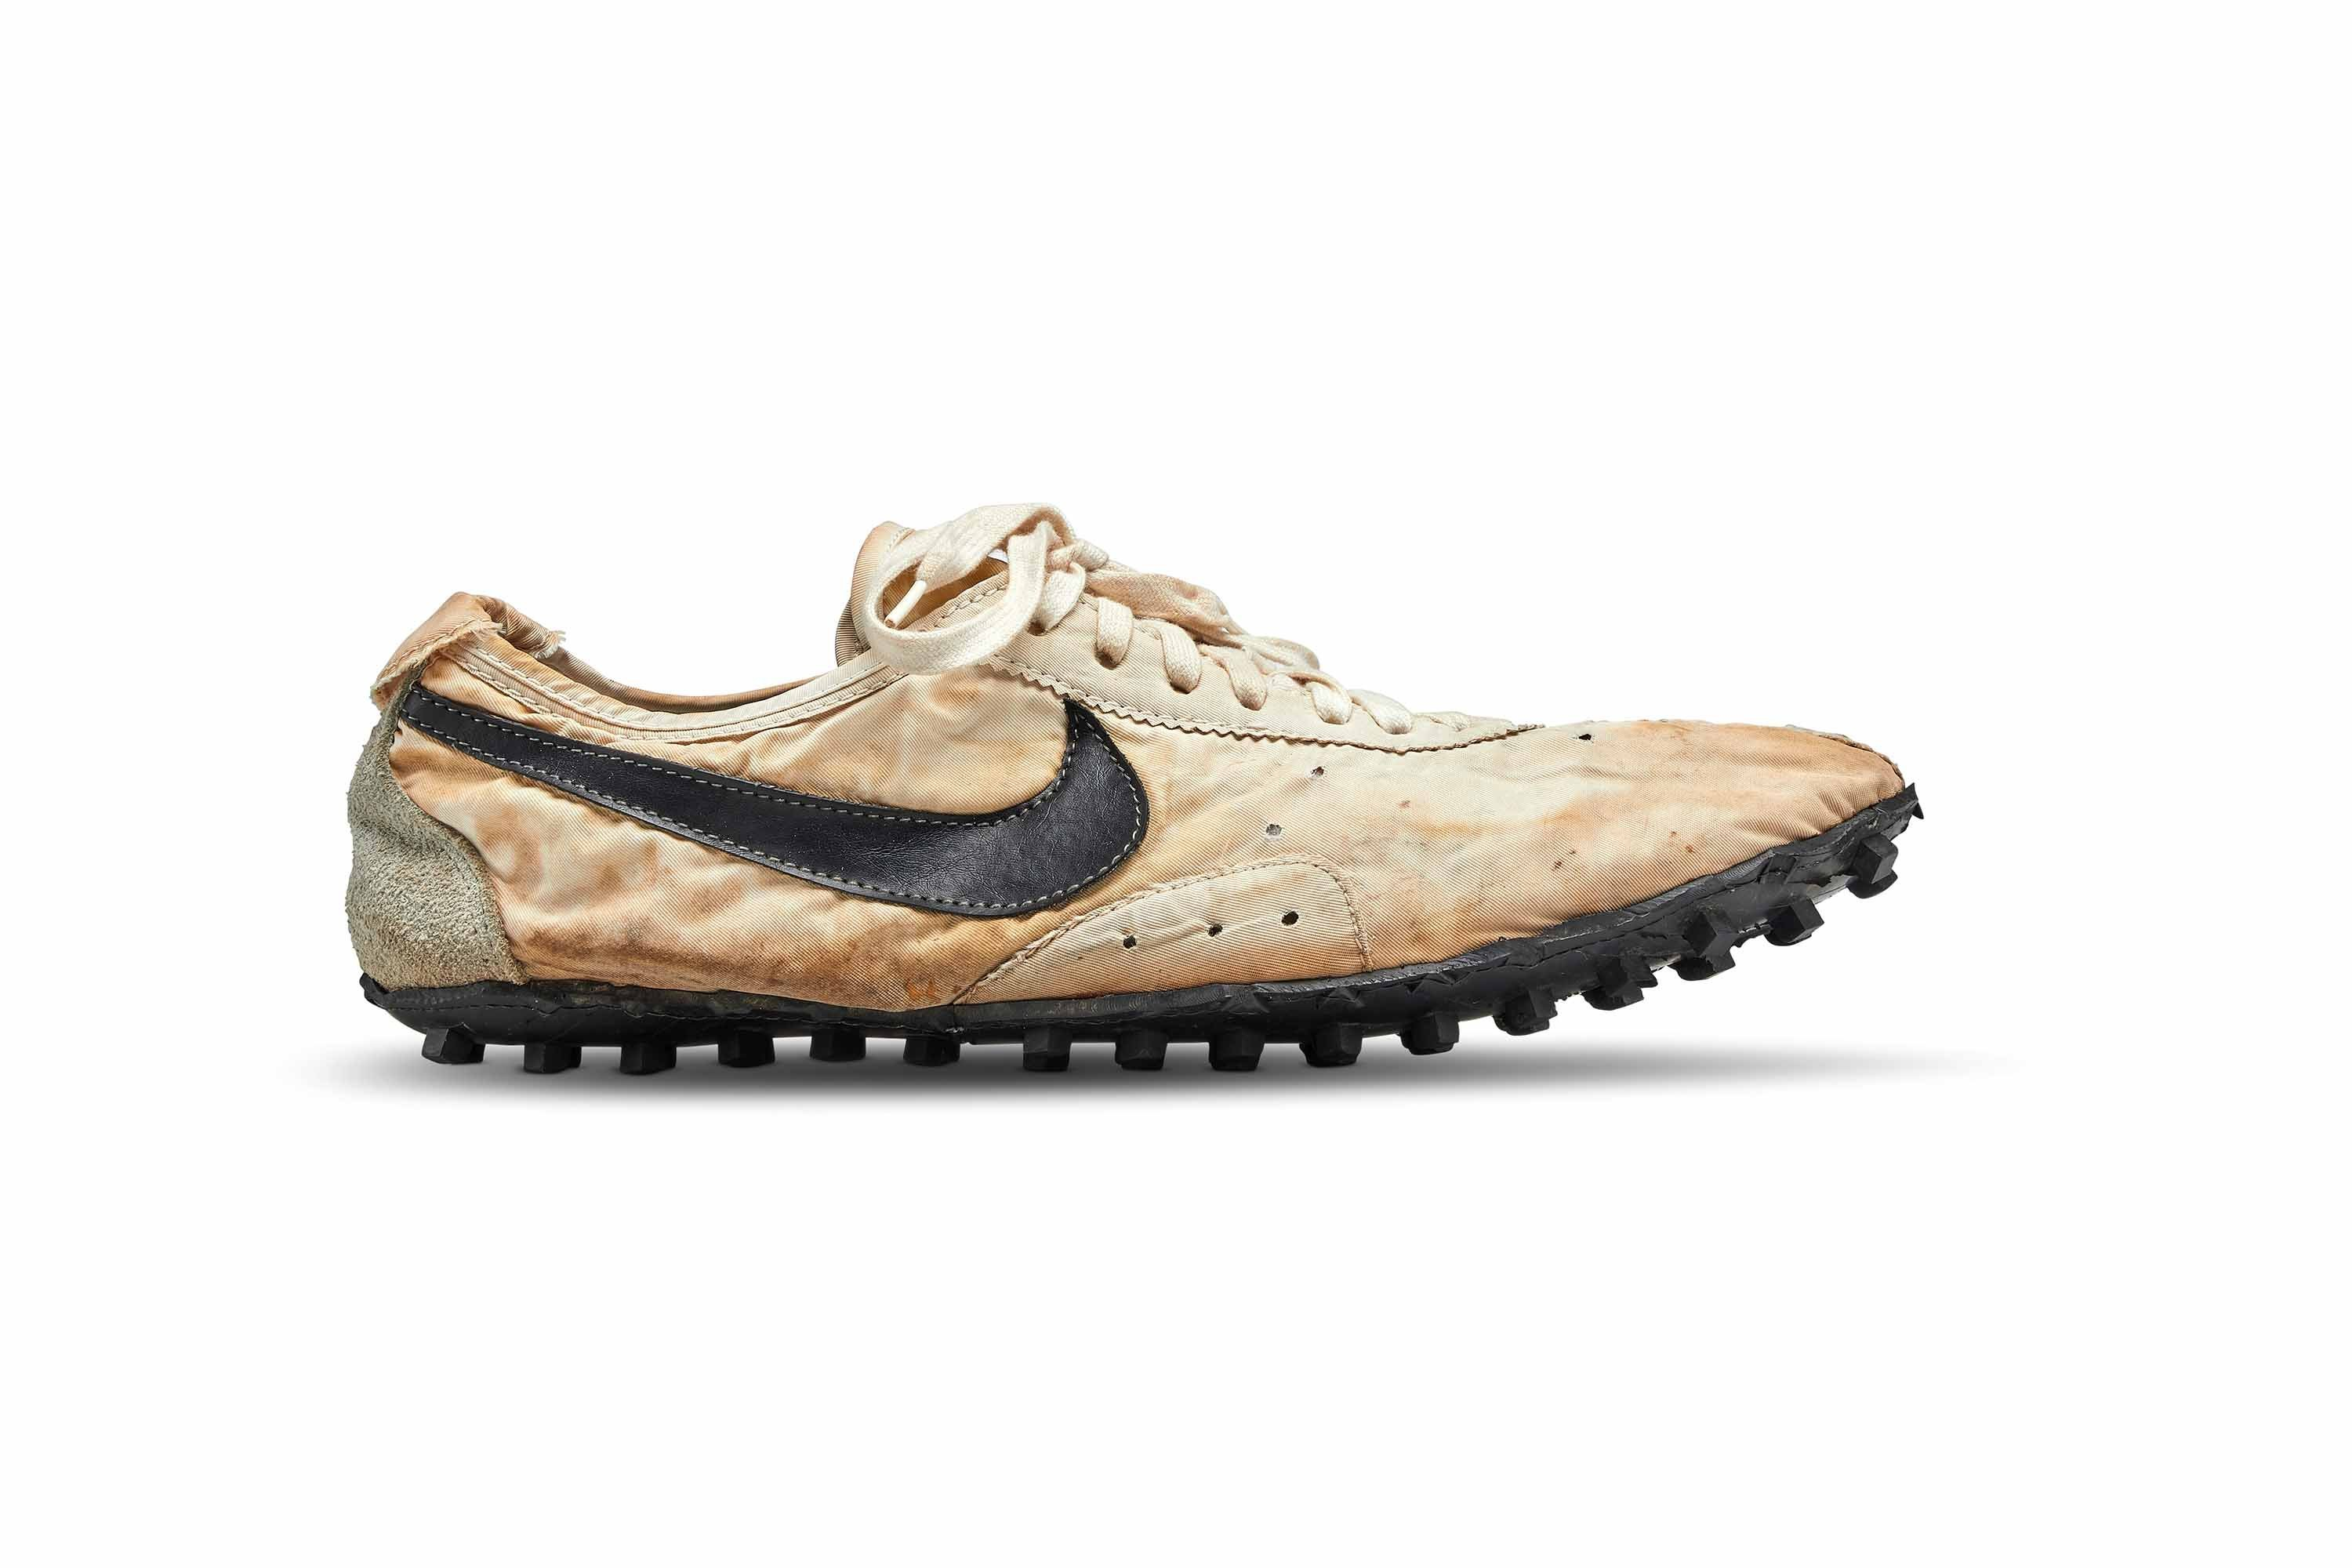 Nike's rare 'Moon Shoe' sells for $437,500, shattering